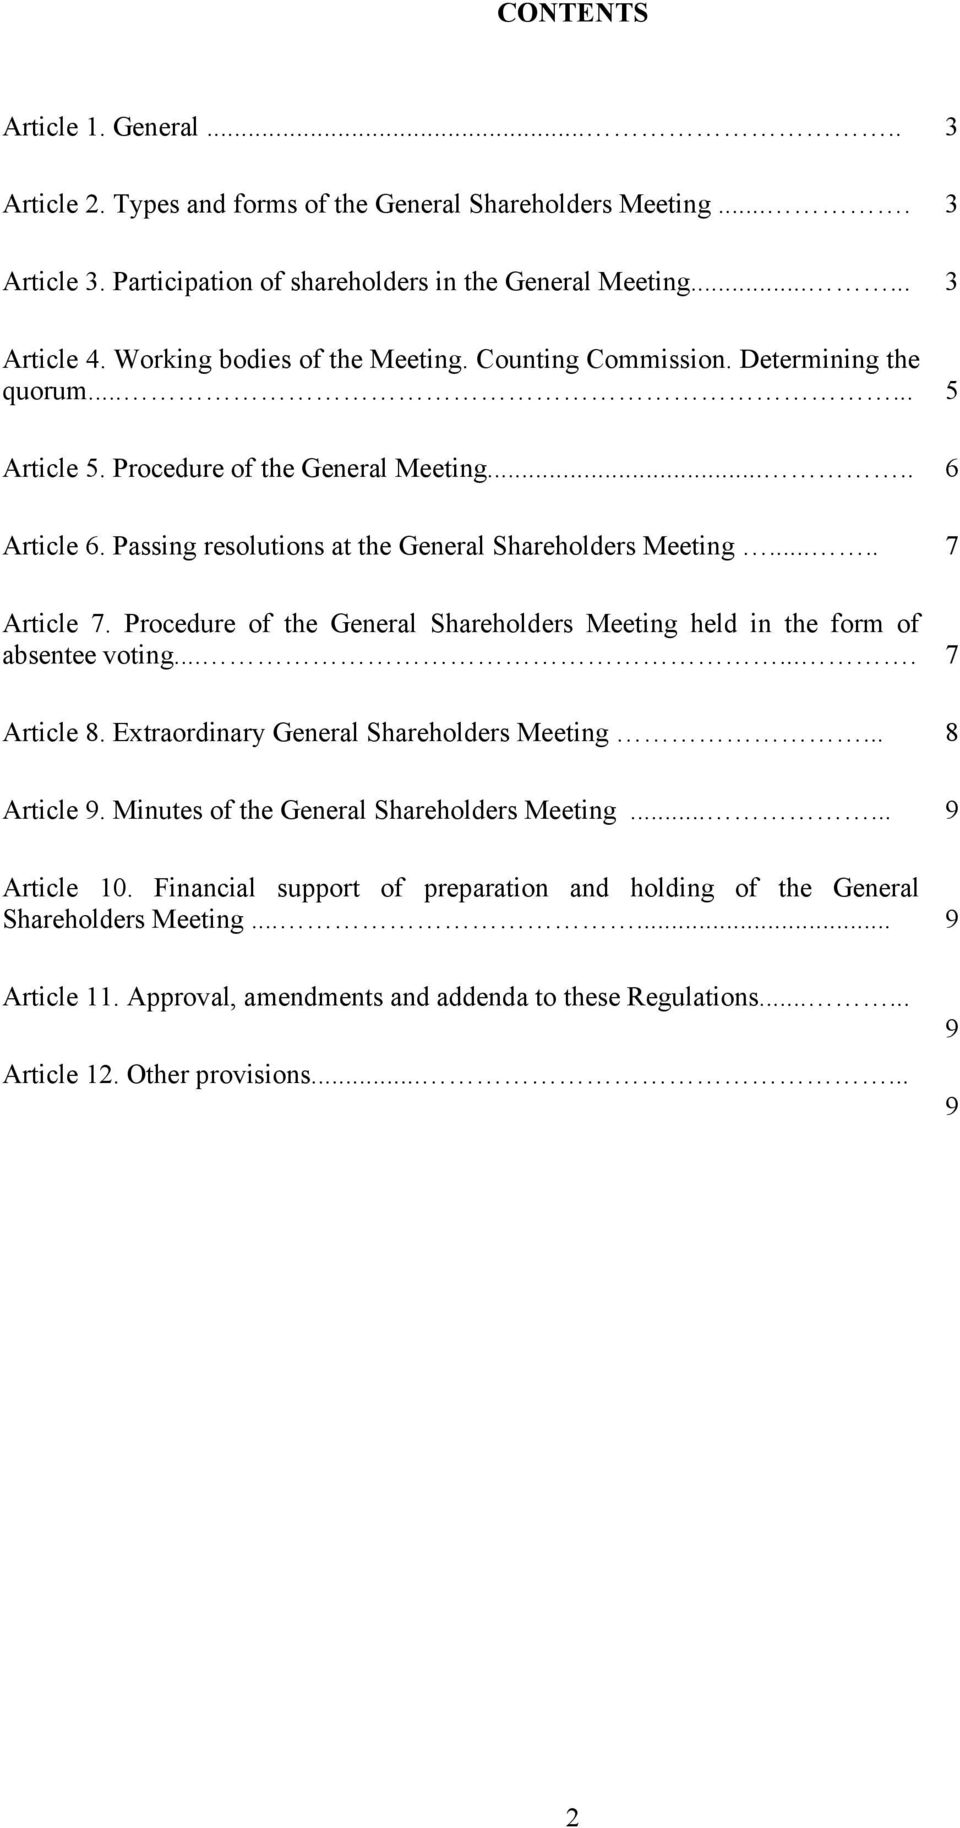 .... 5 6 7 Article 7. Procedure of the General Shareholders Meeting held in the form of absentee voting....... Article 8. Extraordinary General Shareholders Meeting... Article. Minutes of the General Shareholders Meeting.